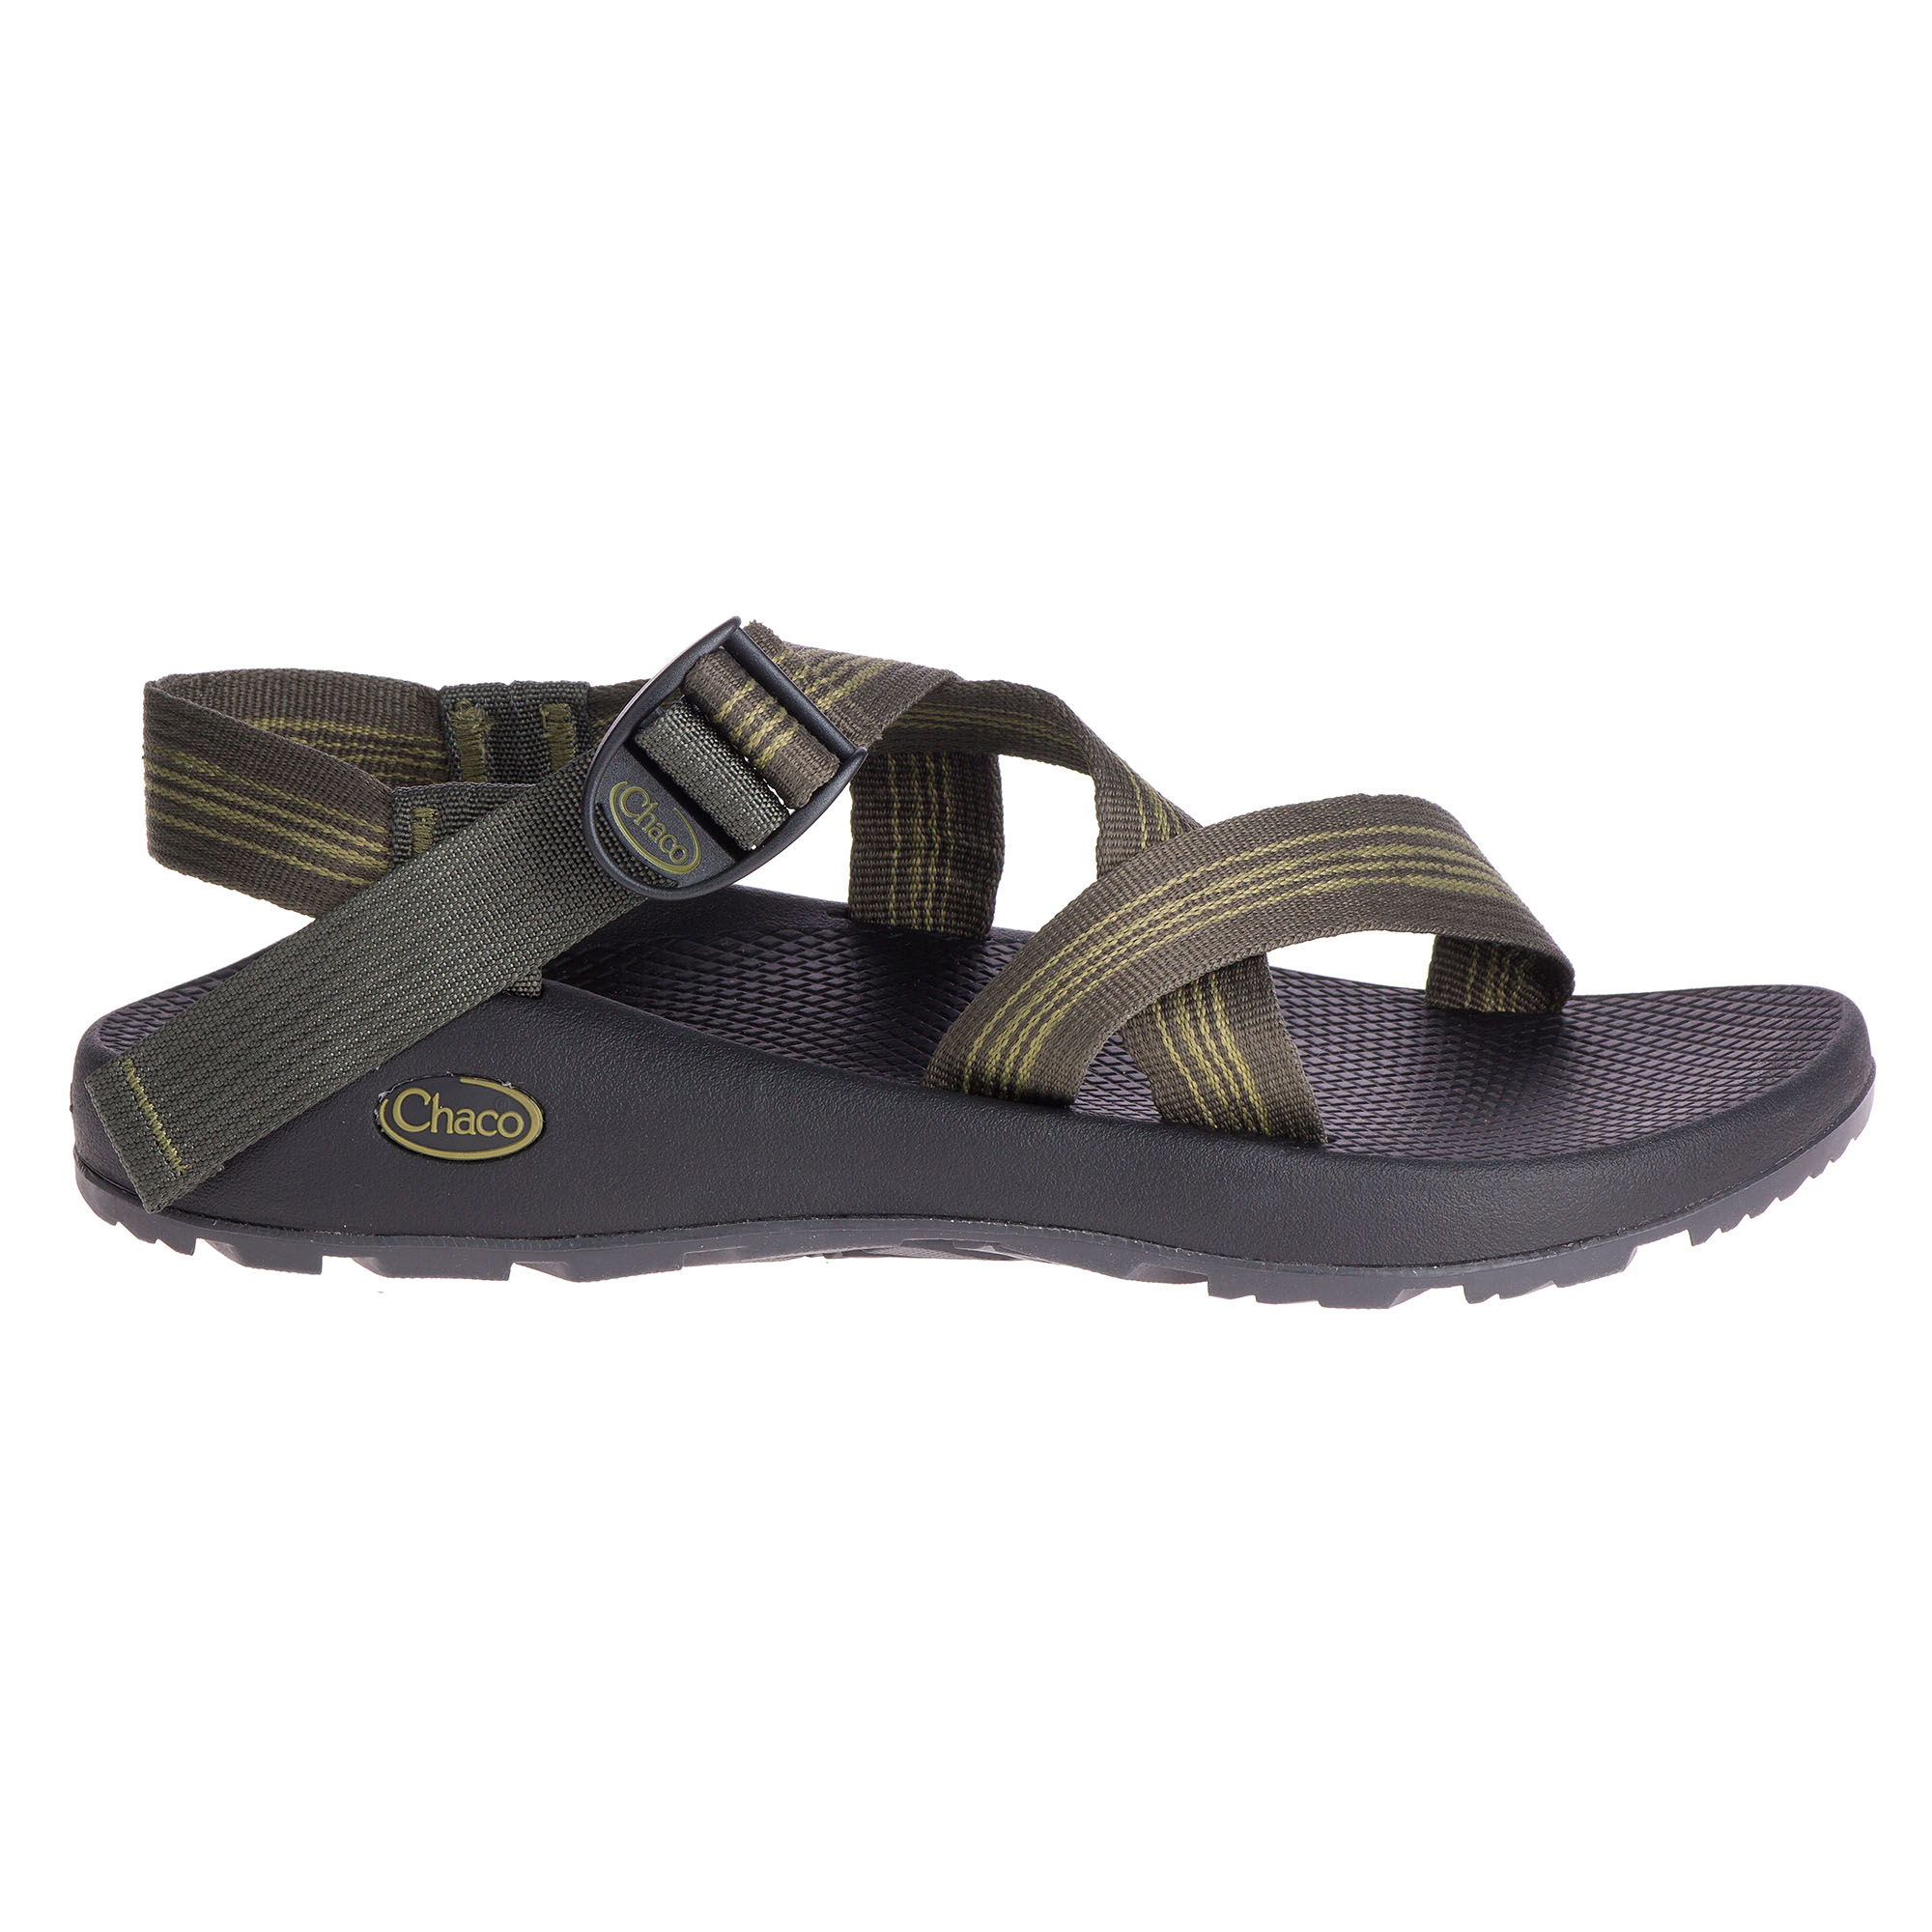 486a3630cd83 Chaco Men s Z 1 Classic Sandals - Sun   Ski Sports